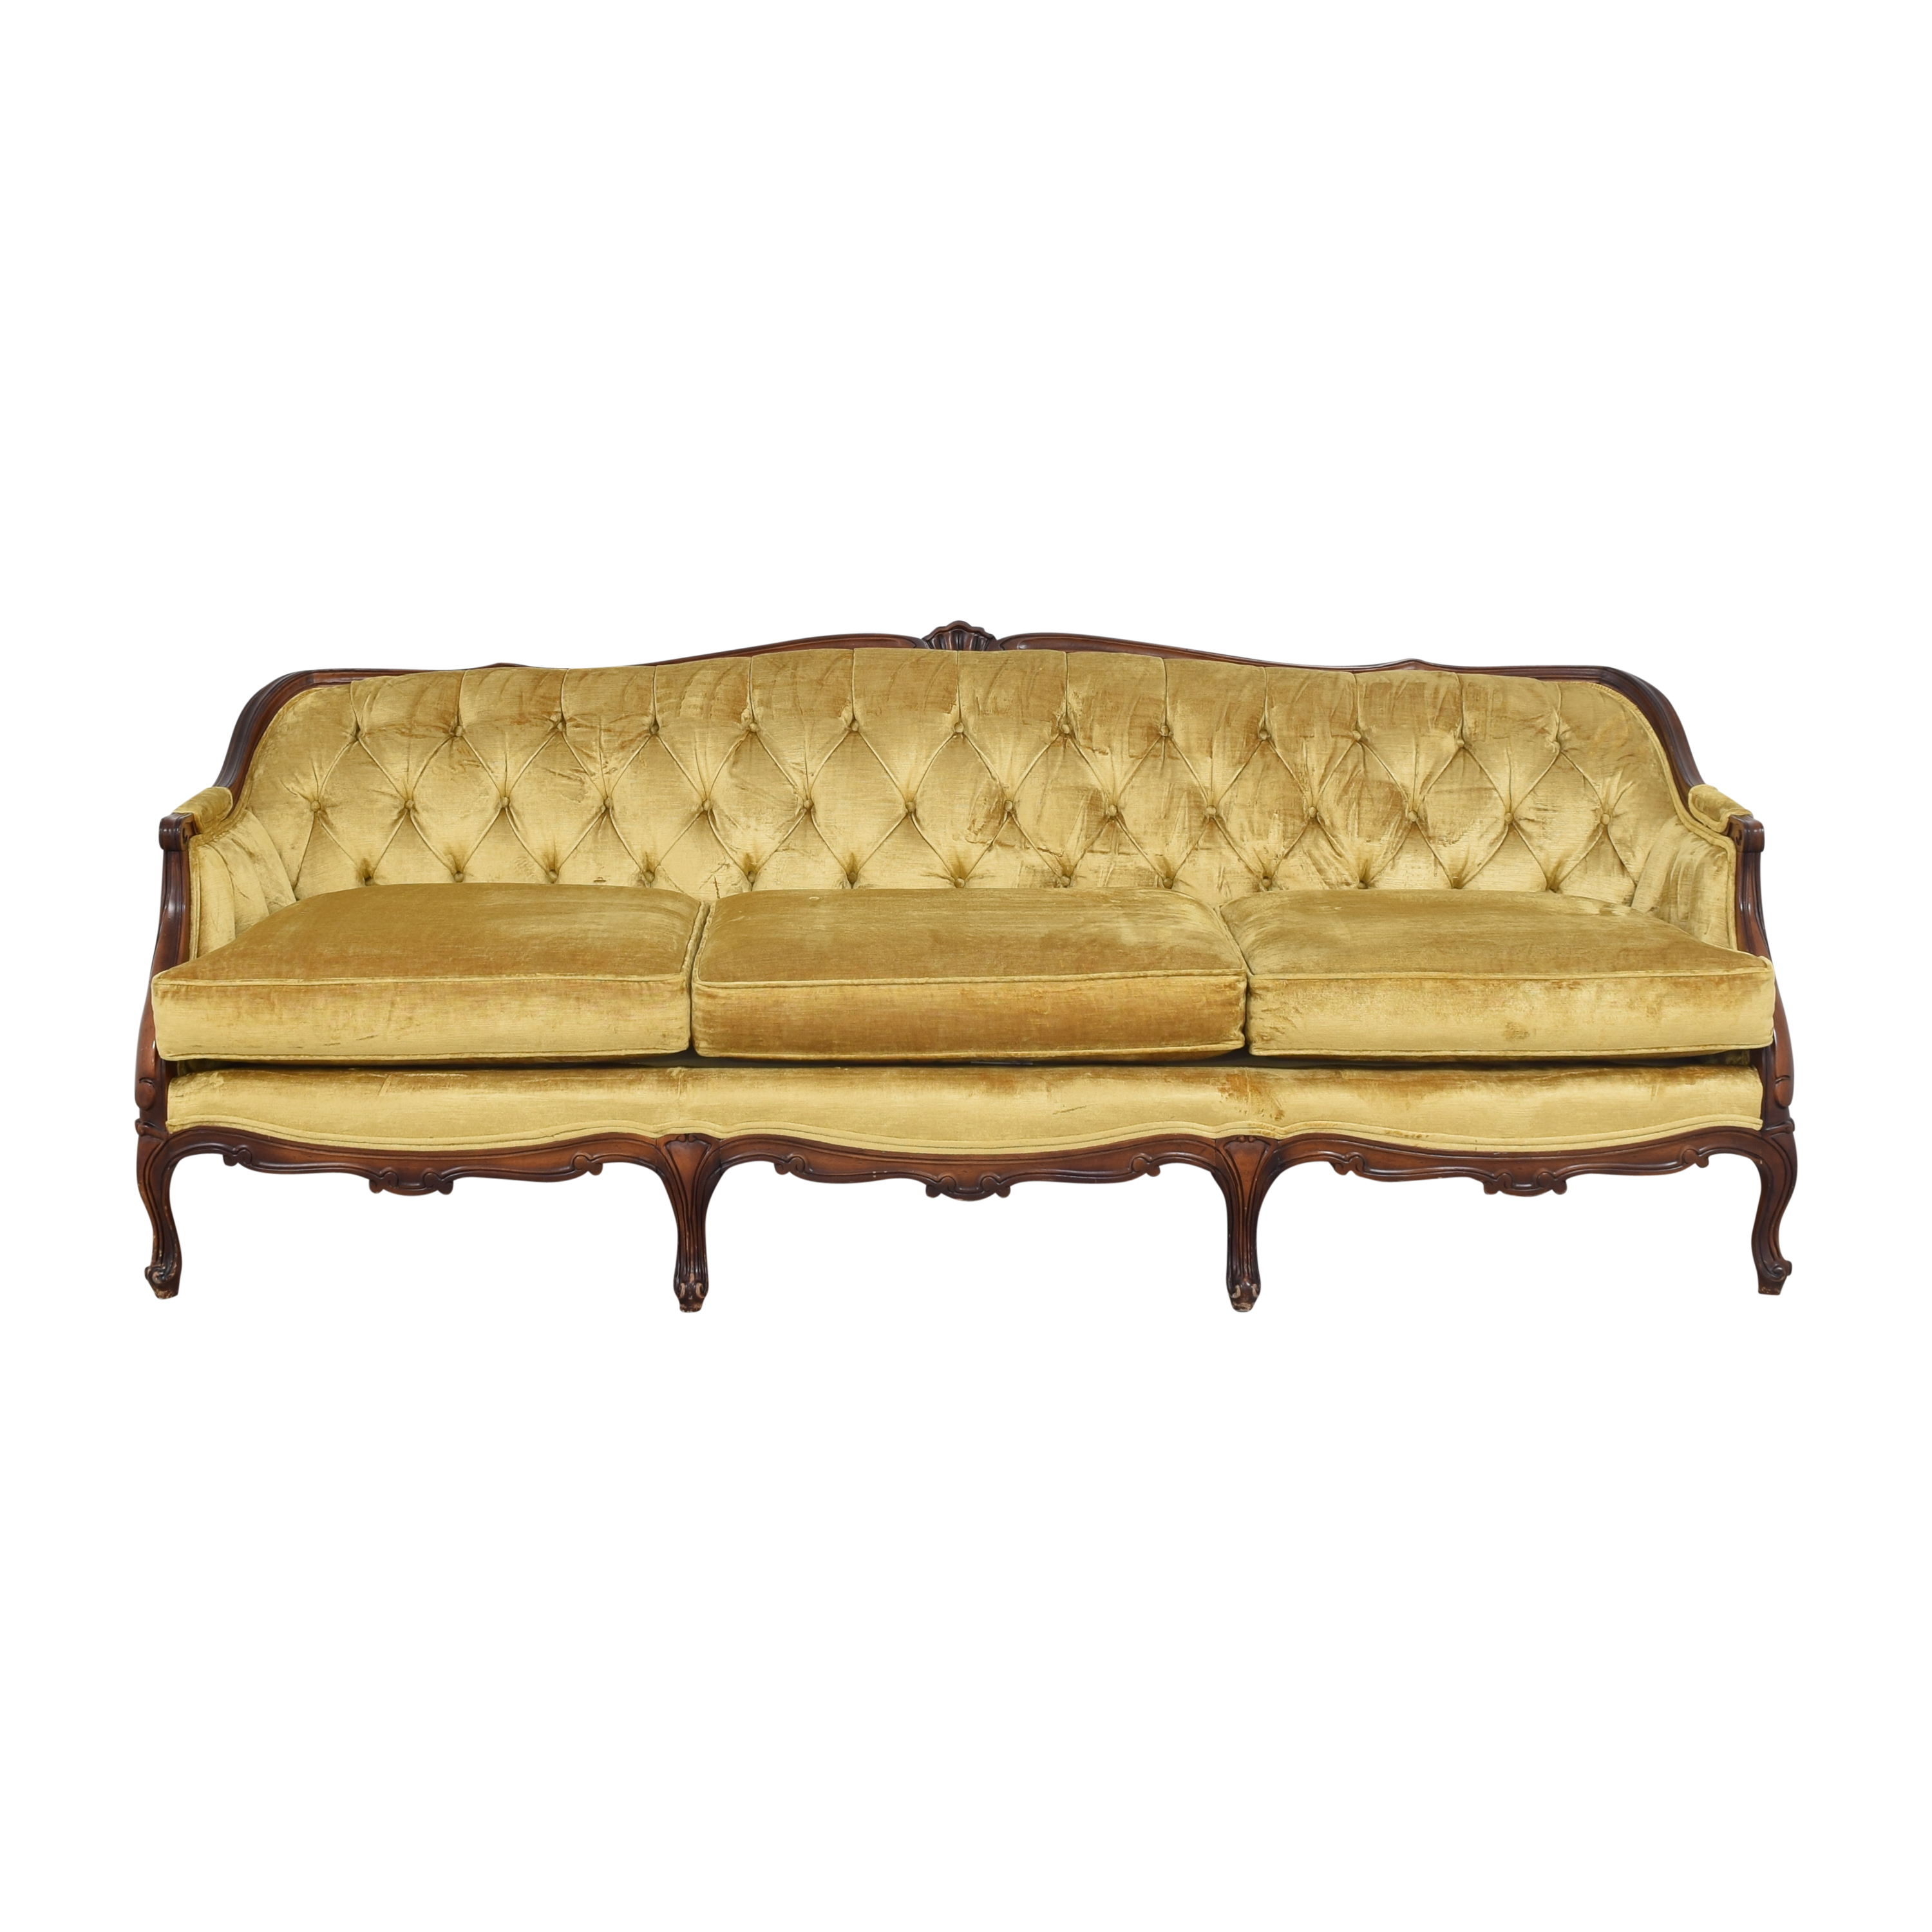 Key City Furniture Key City Furniture Tufted Sofa gold and brown